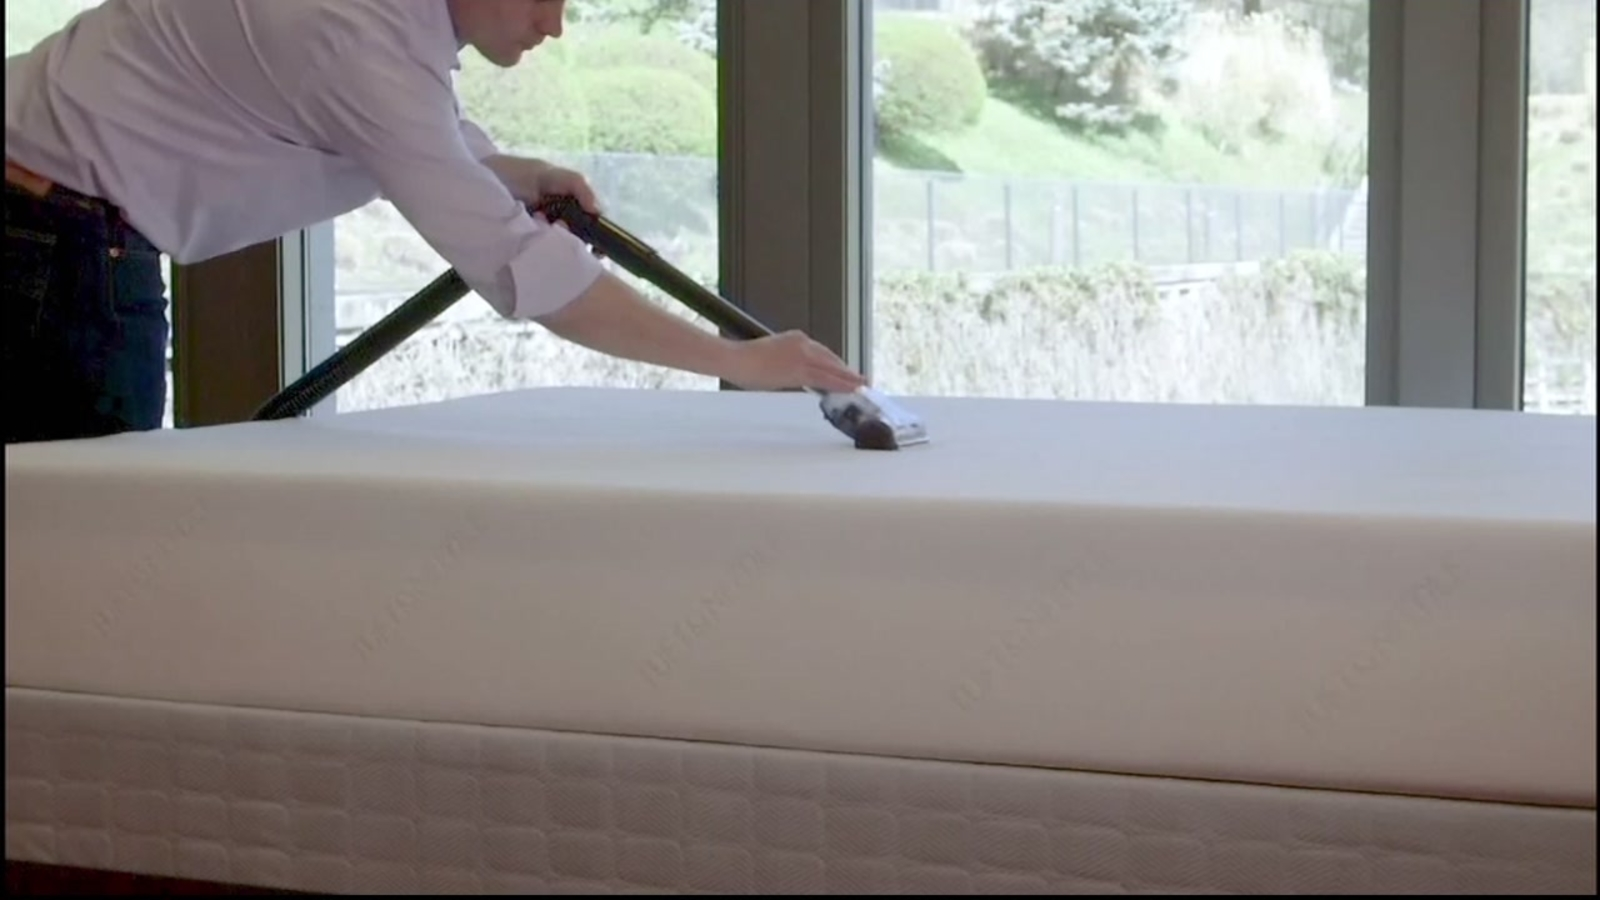 The importance of cleaning your mattress and how to do it